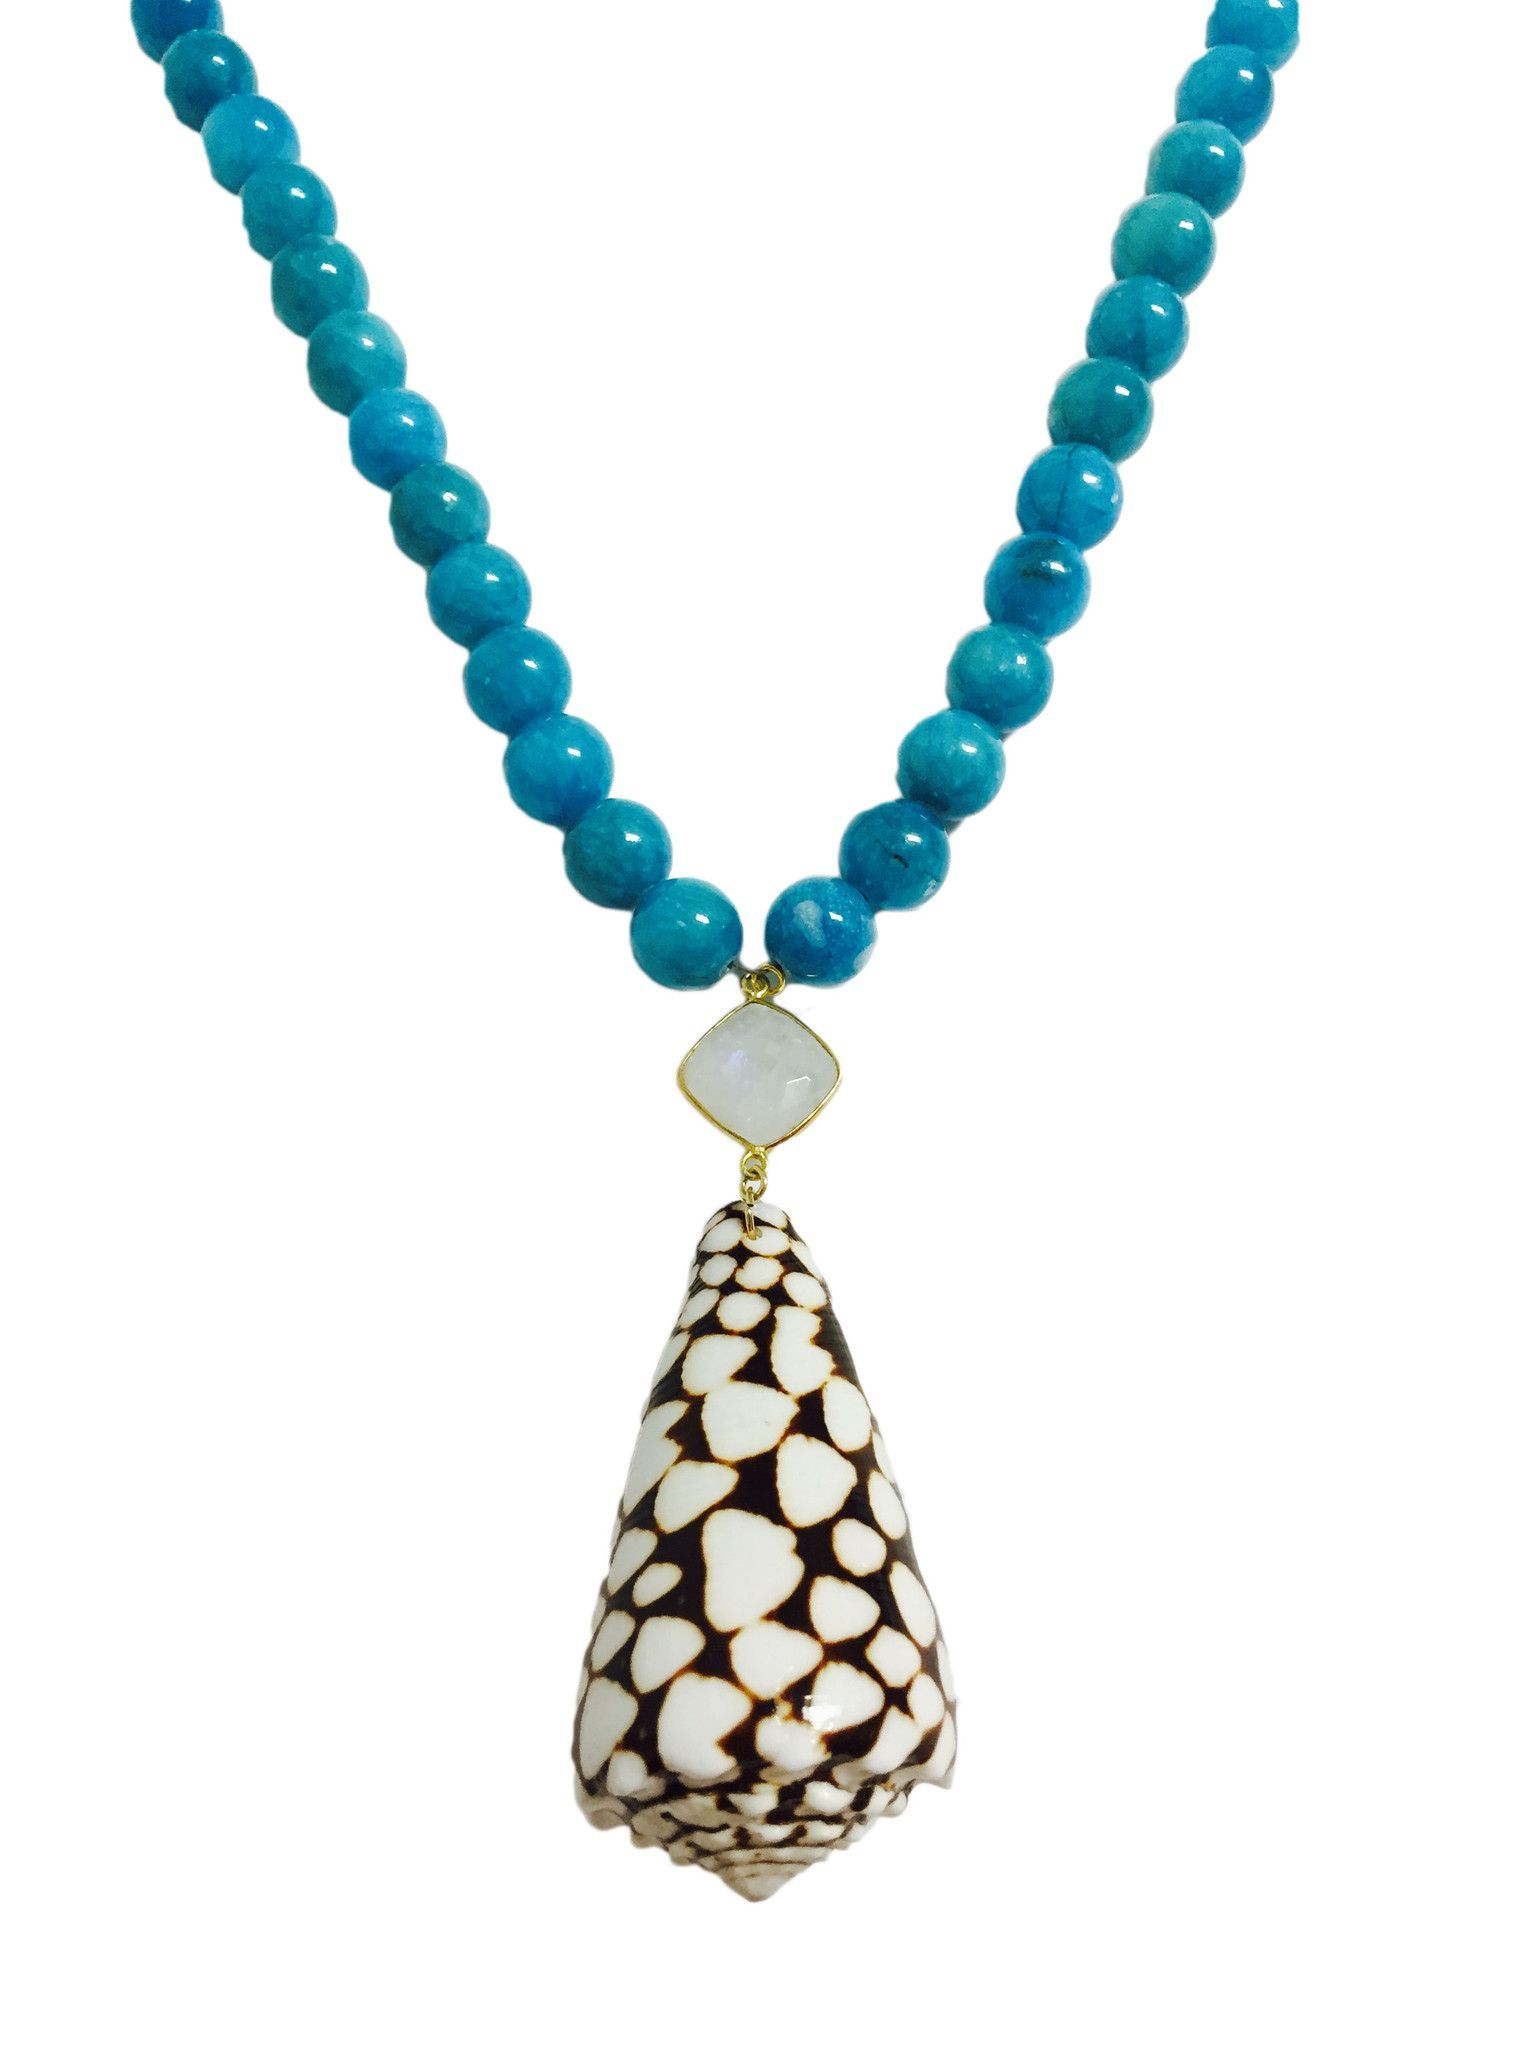 Cone Shell With Moonstone and Jade Beads